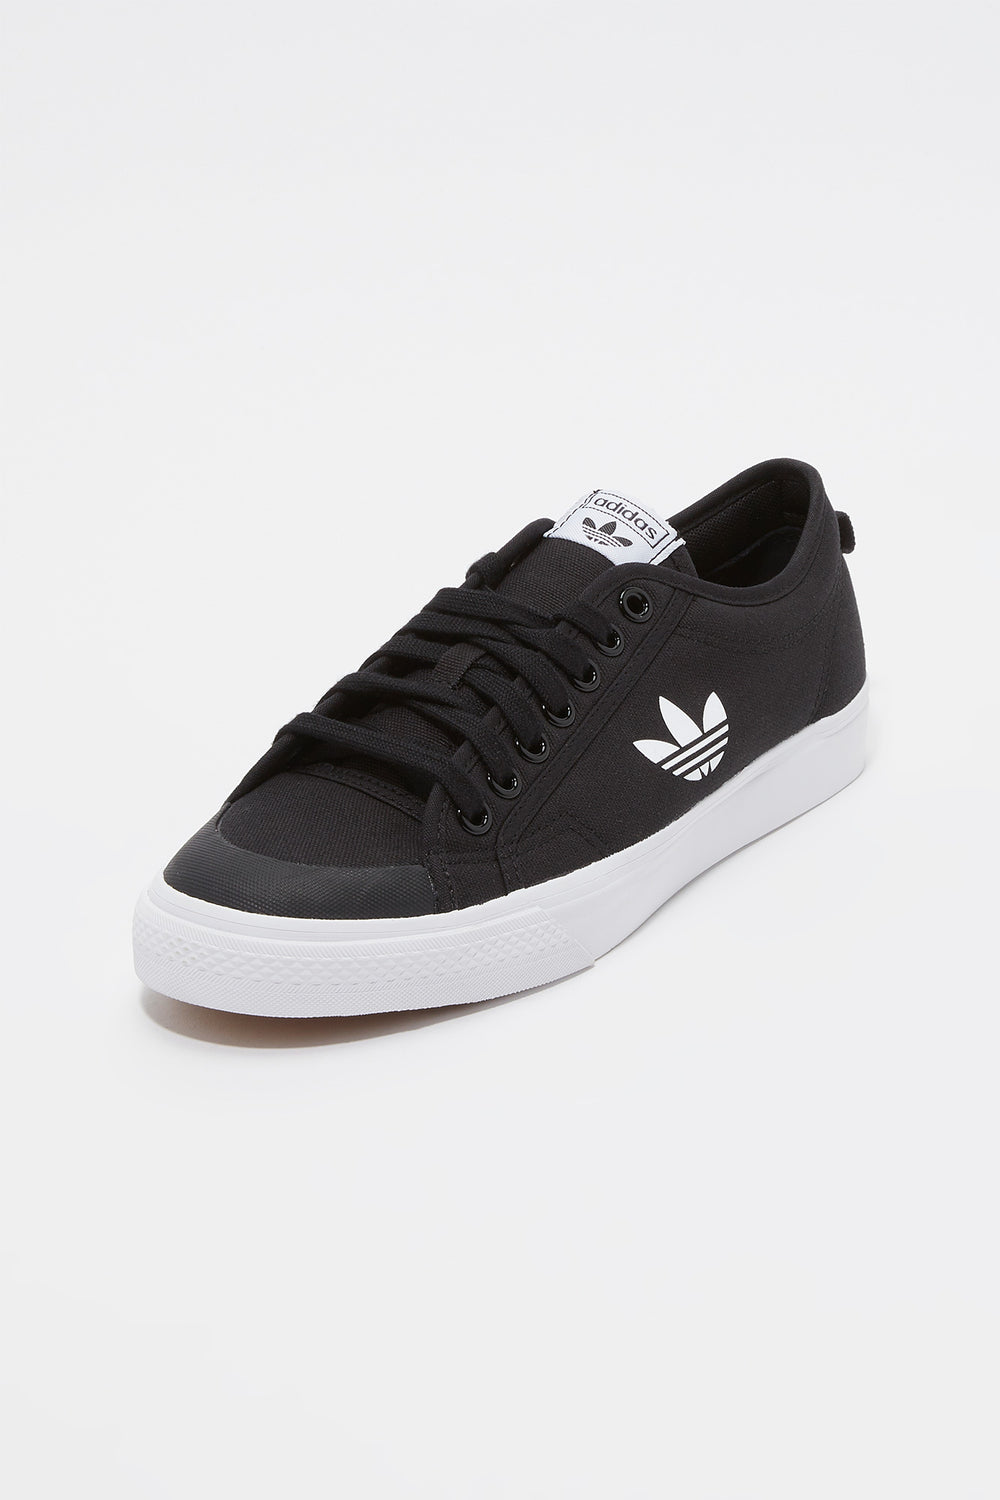 Adidas Mens Black Nizza Trefoil Shoes Black With White